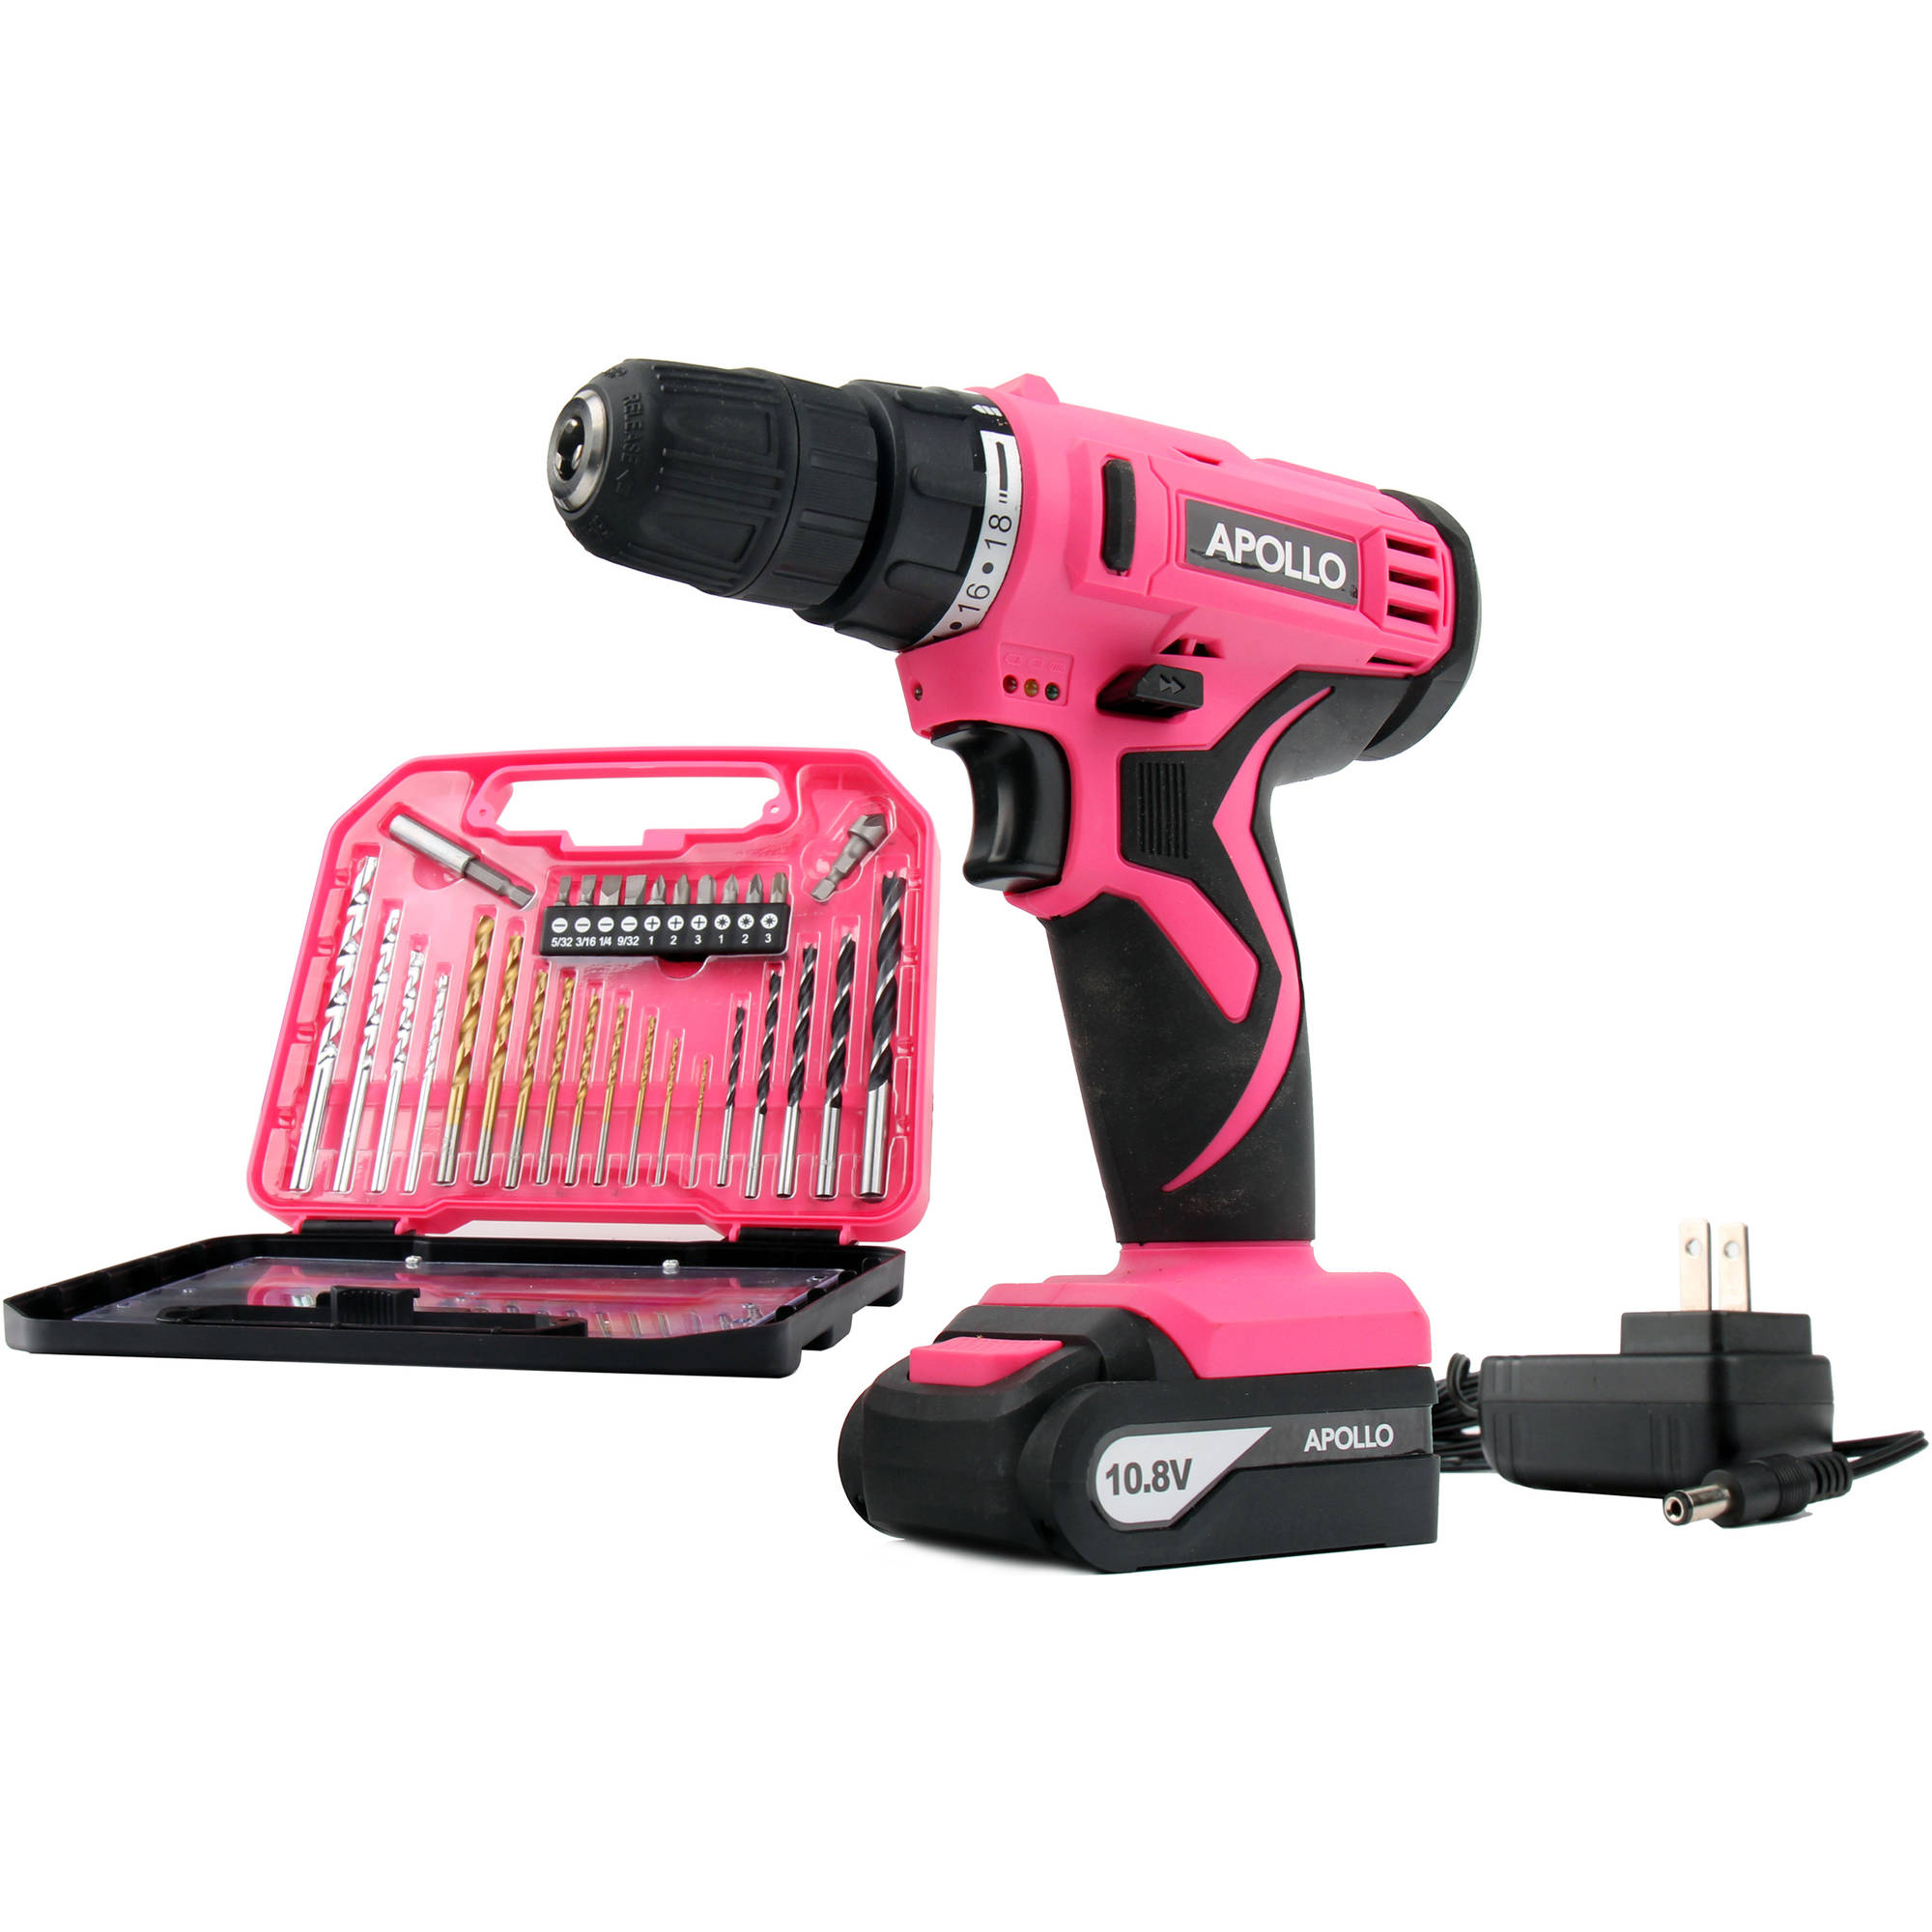 Apollo Tools 10.8V Lithium-Ion Cordless Drill with 30-Piece Accessory Set